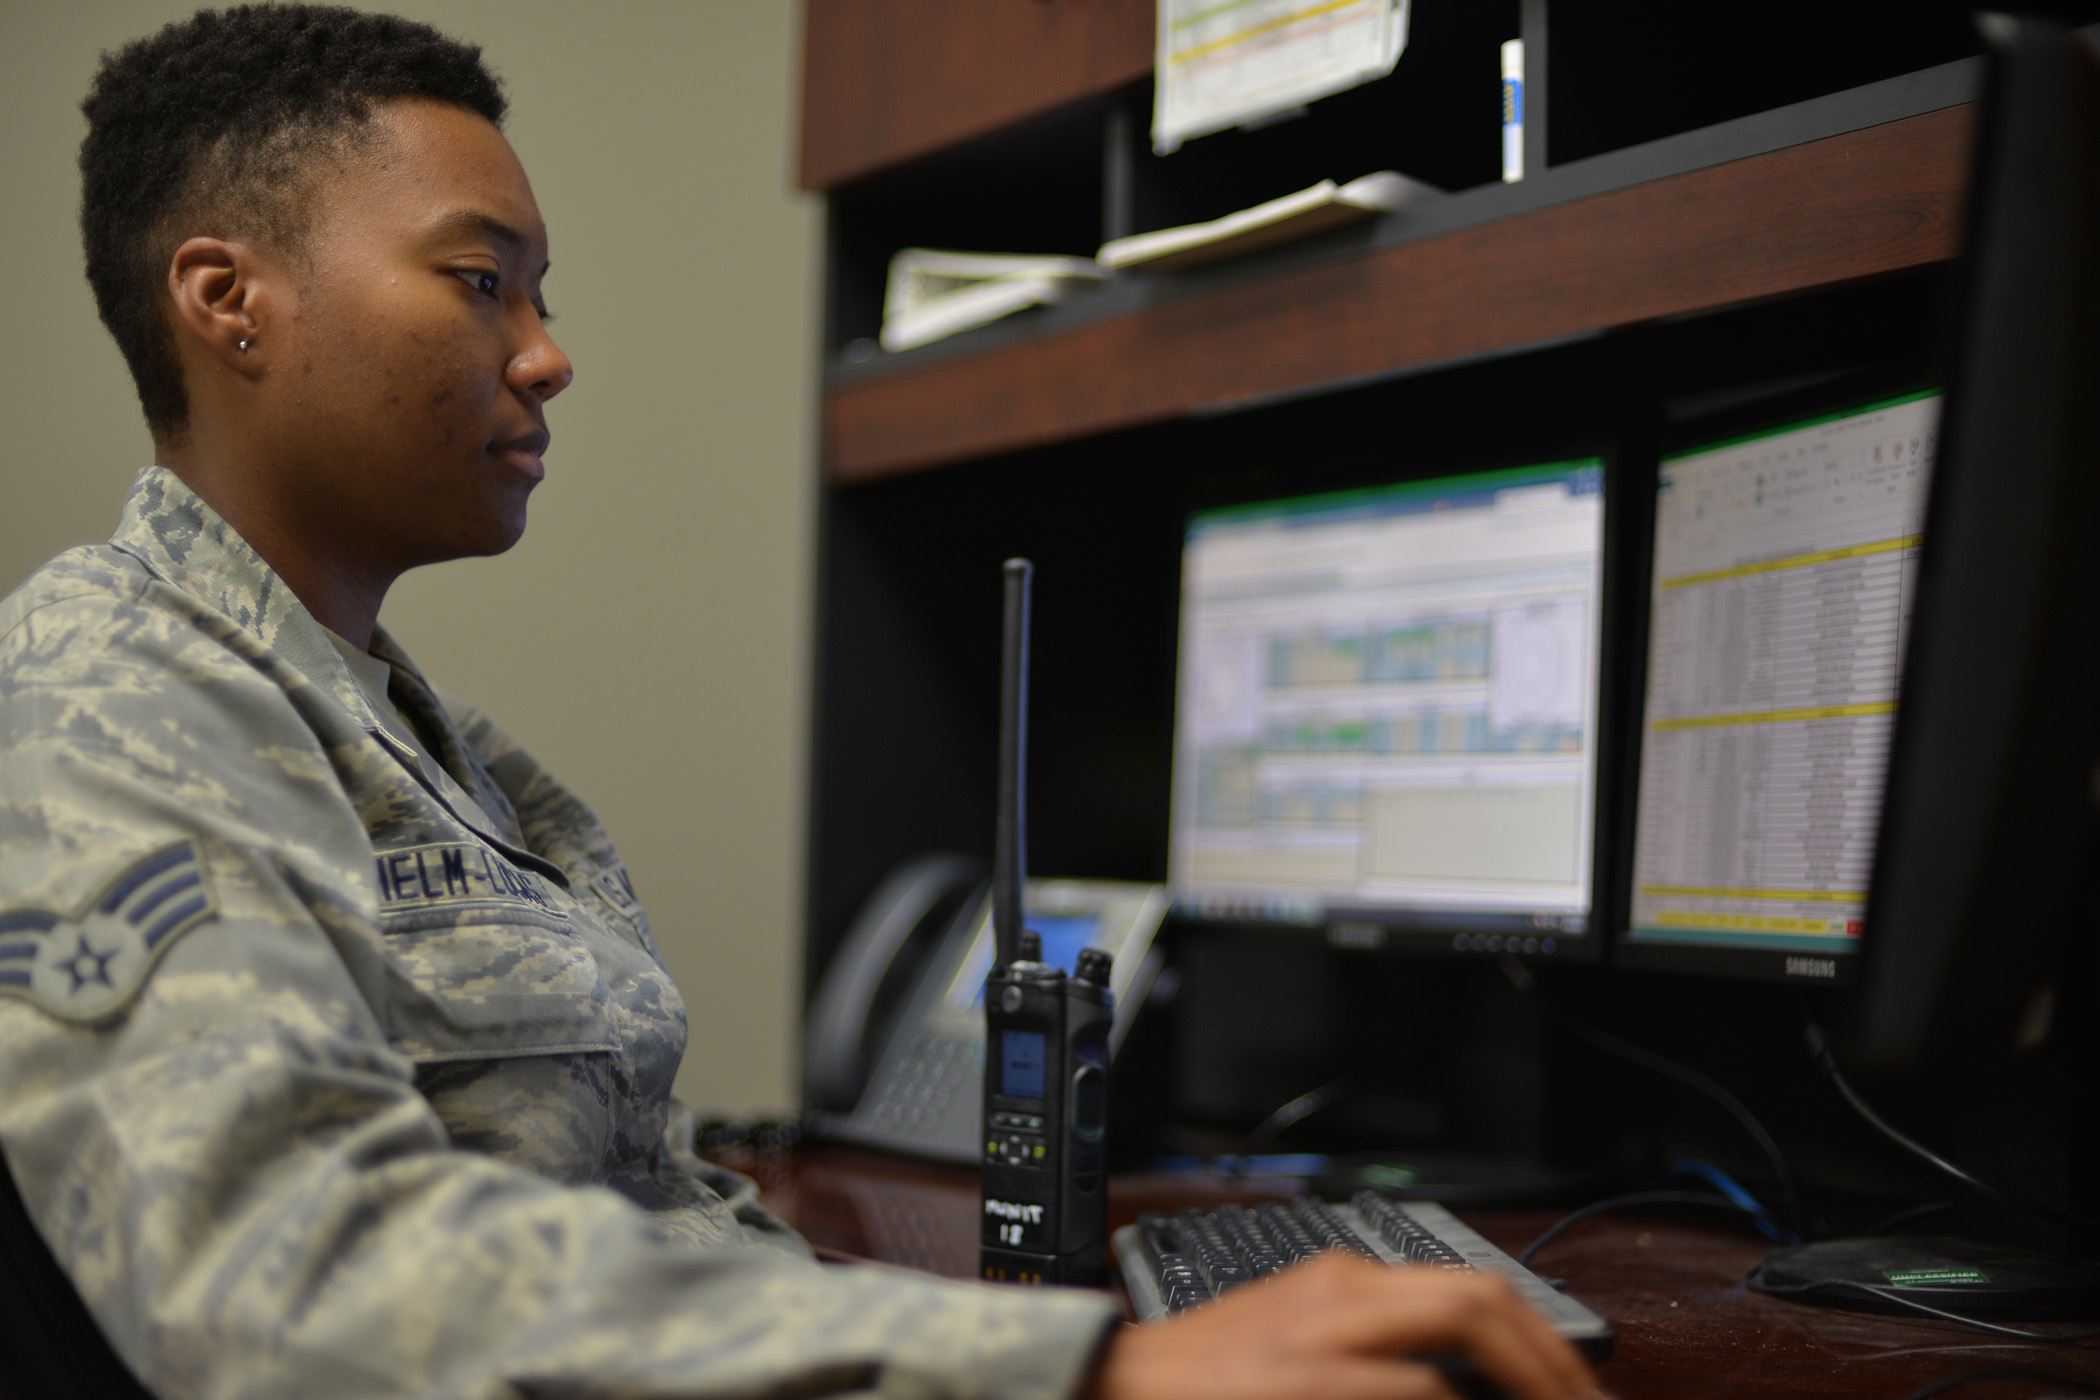 Senior Airman Jasmine Helm-Lucas working with data in June 2017 at Malmstrom Air Force Base in Montana. (U.S. Air Force photo/Airman 1st Class Daniel Brosam)